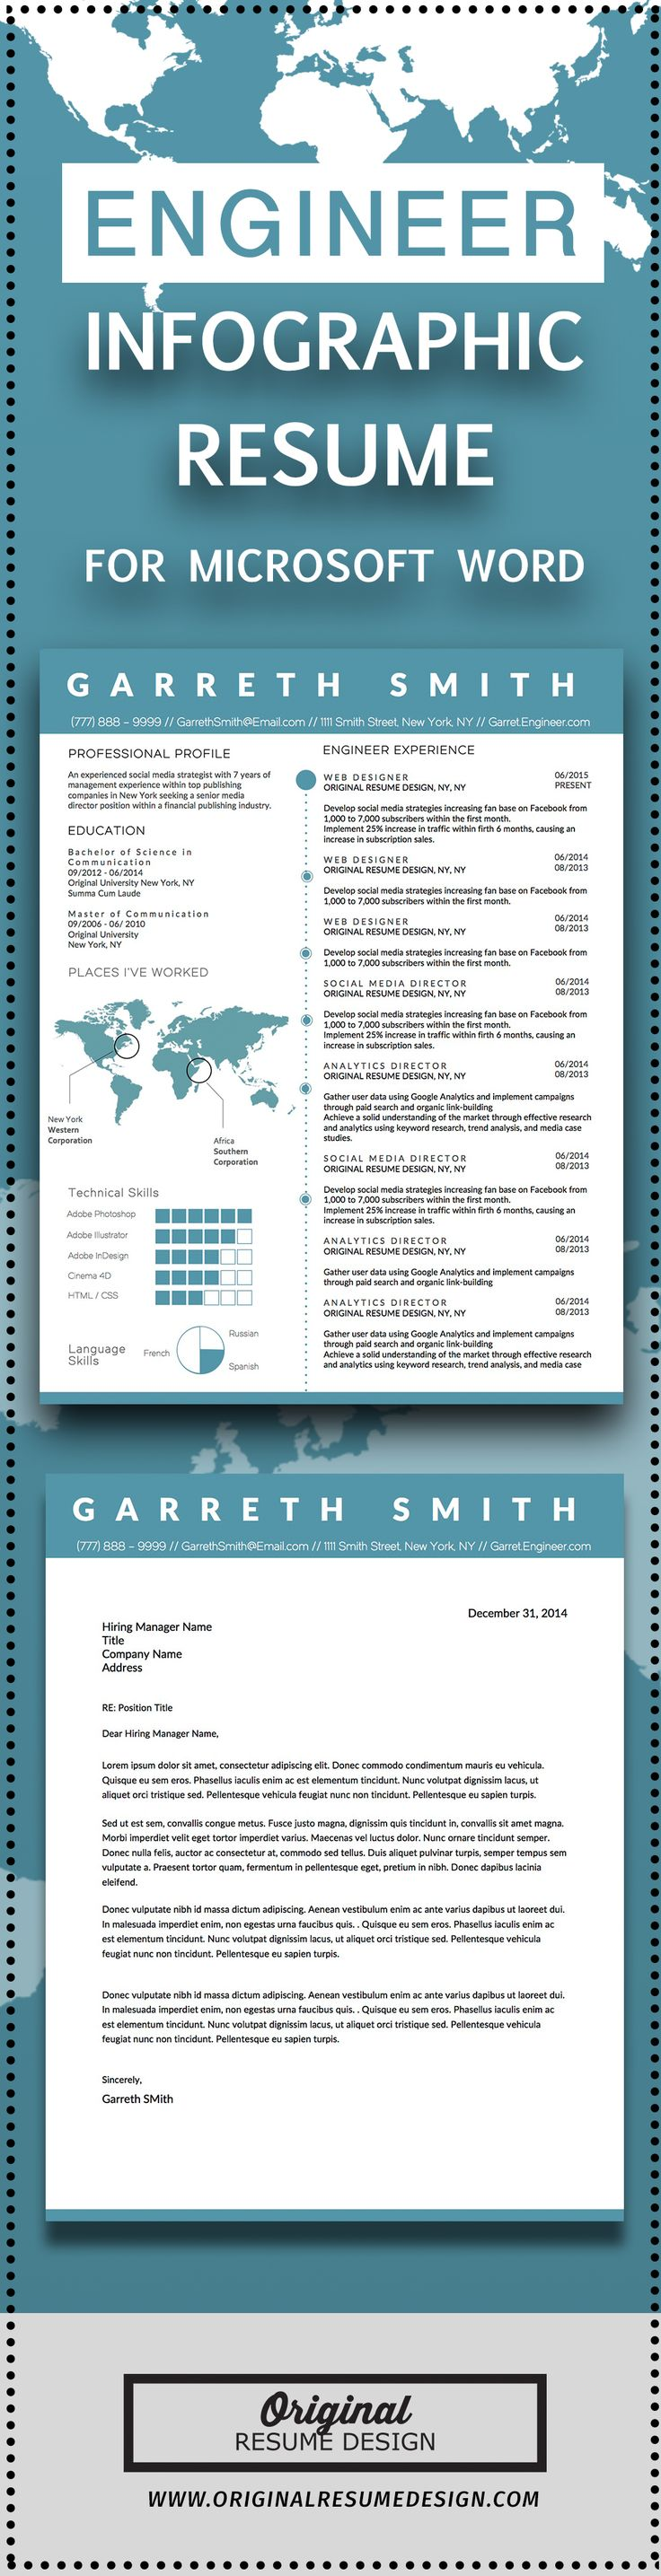 Resume Infographic Creative Clean Business